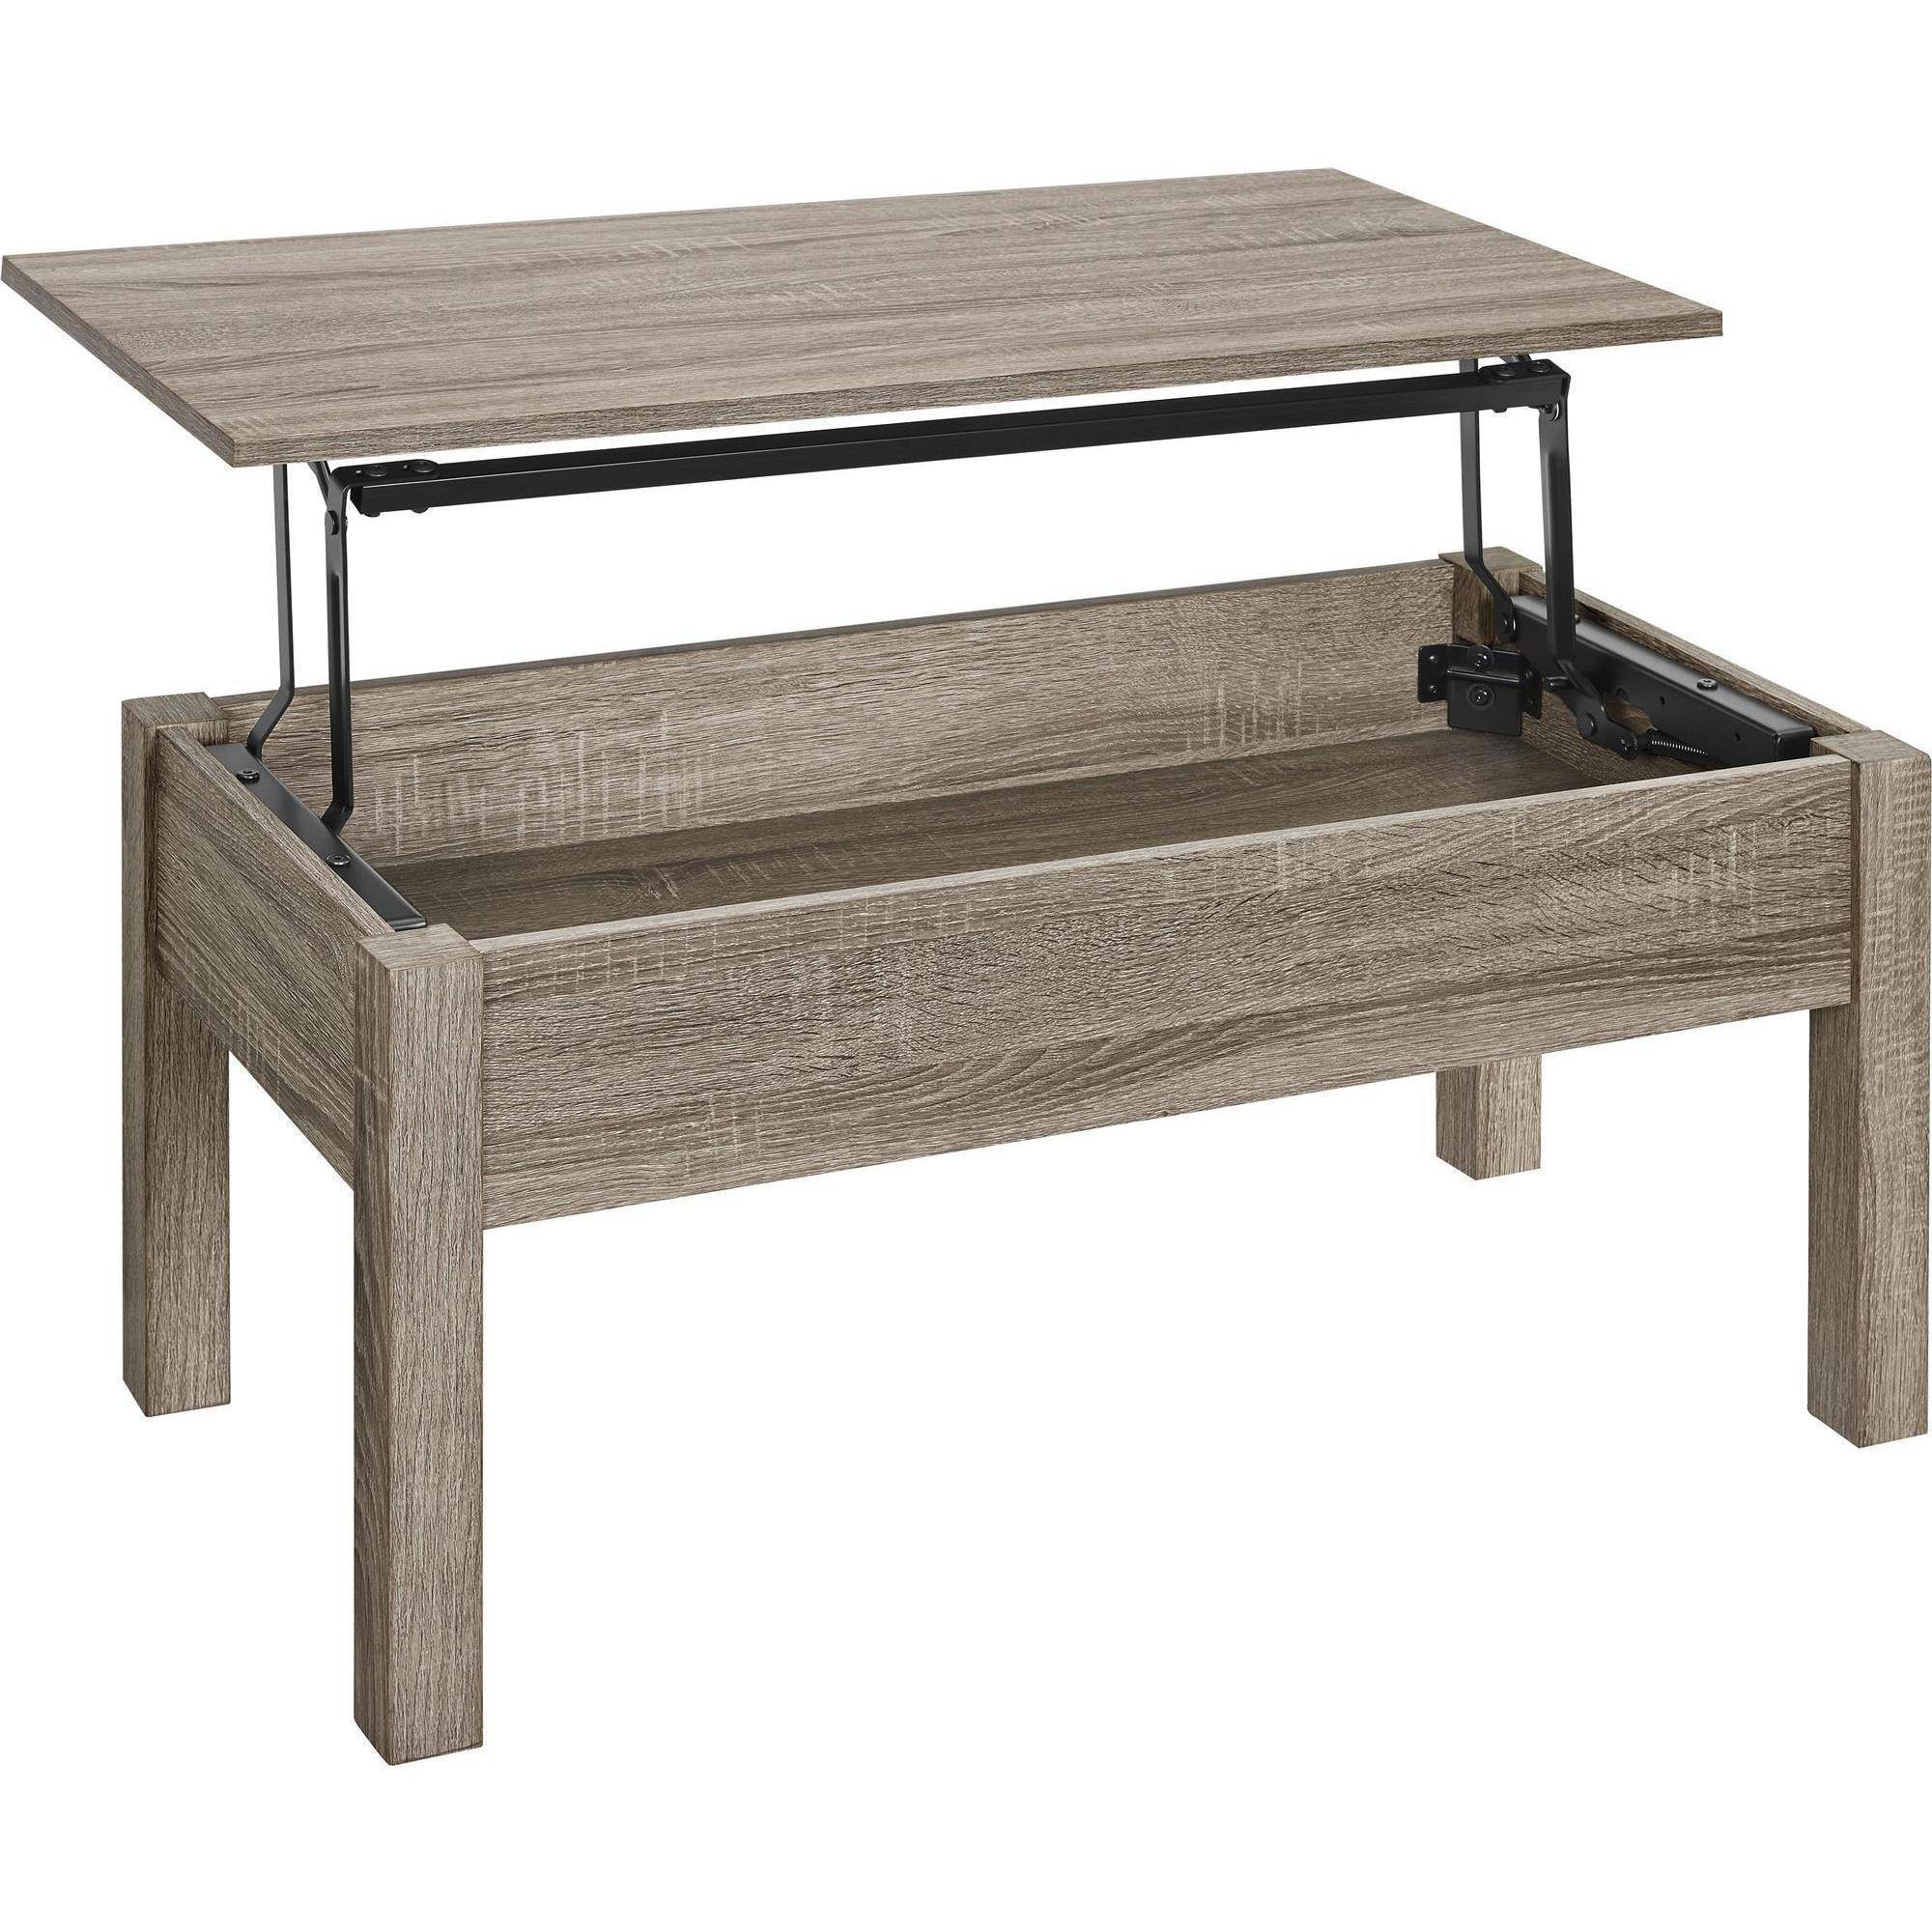 Mainstays Lift-Top Coffee Table, Multiple Colors - Walmart within Coffee Tables With Lift Top Storage (Image 22 of 30)